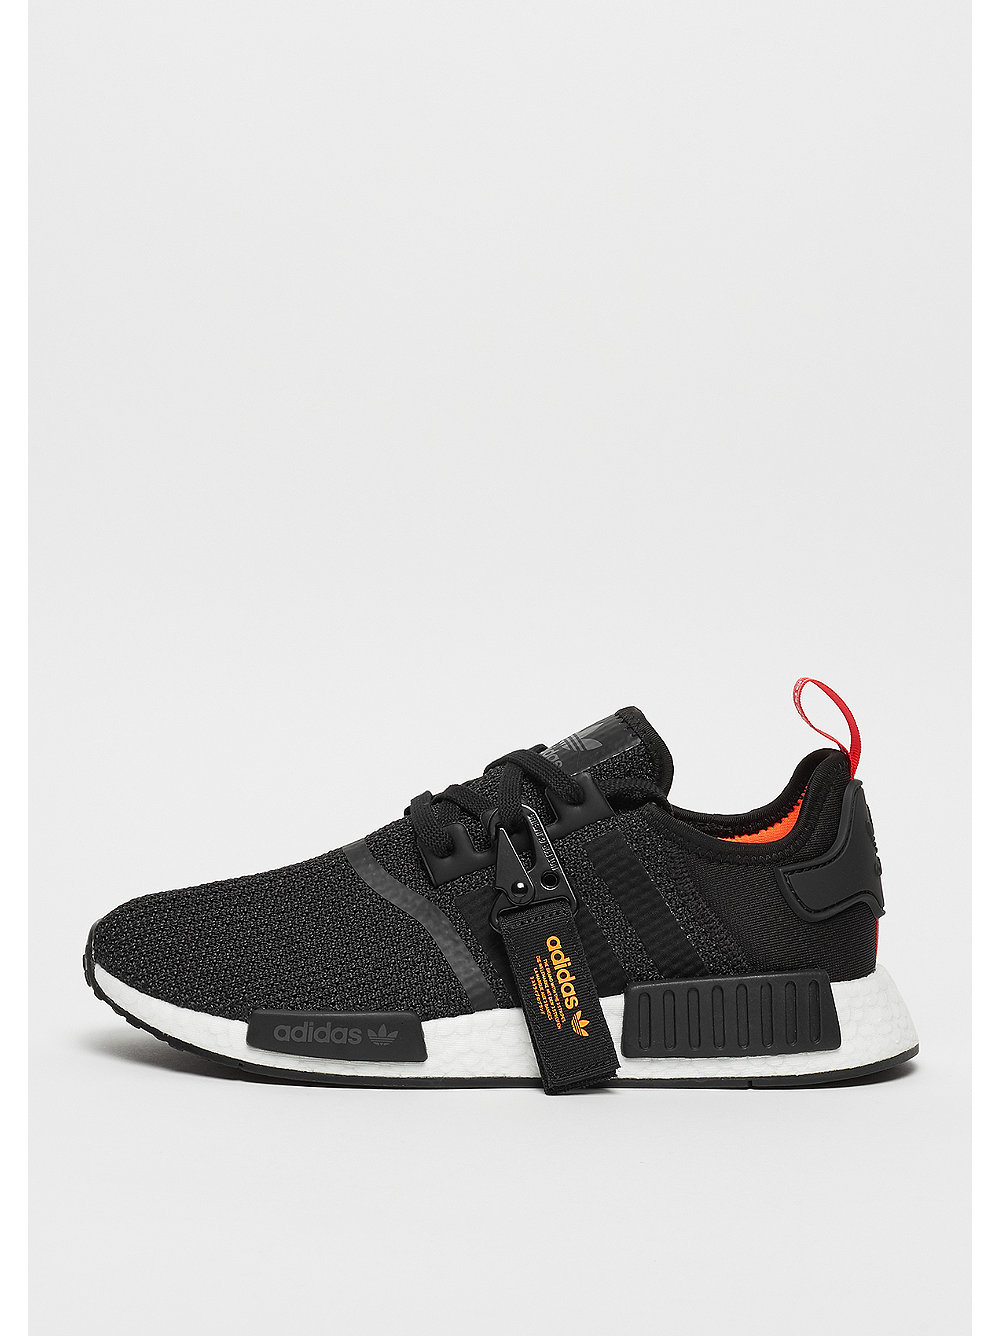 r1 Orange Nmd Nmd Blackblacksolar r1 shQrdtxCB